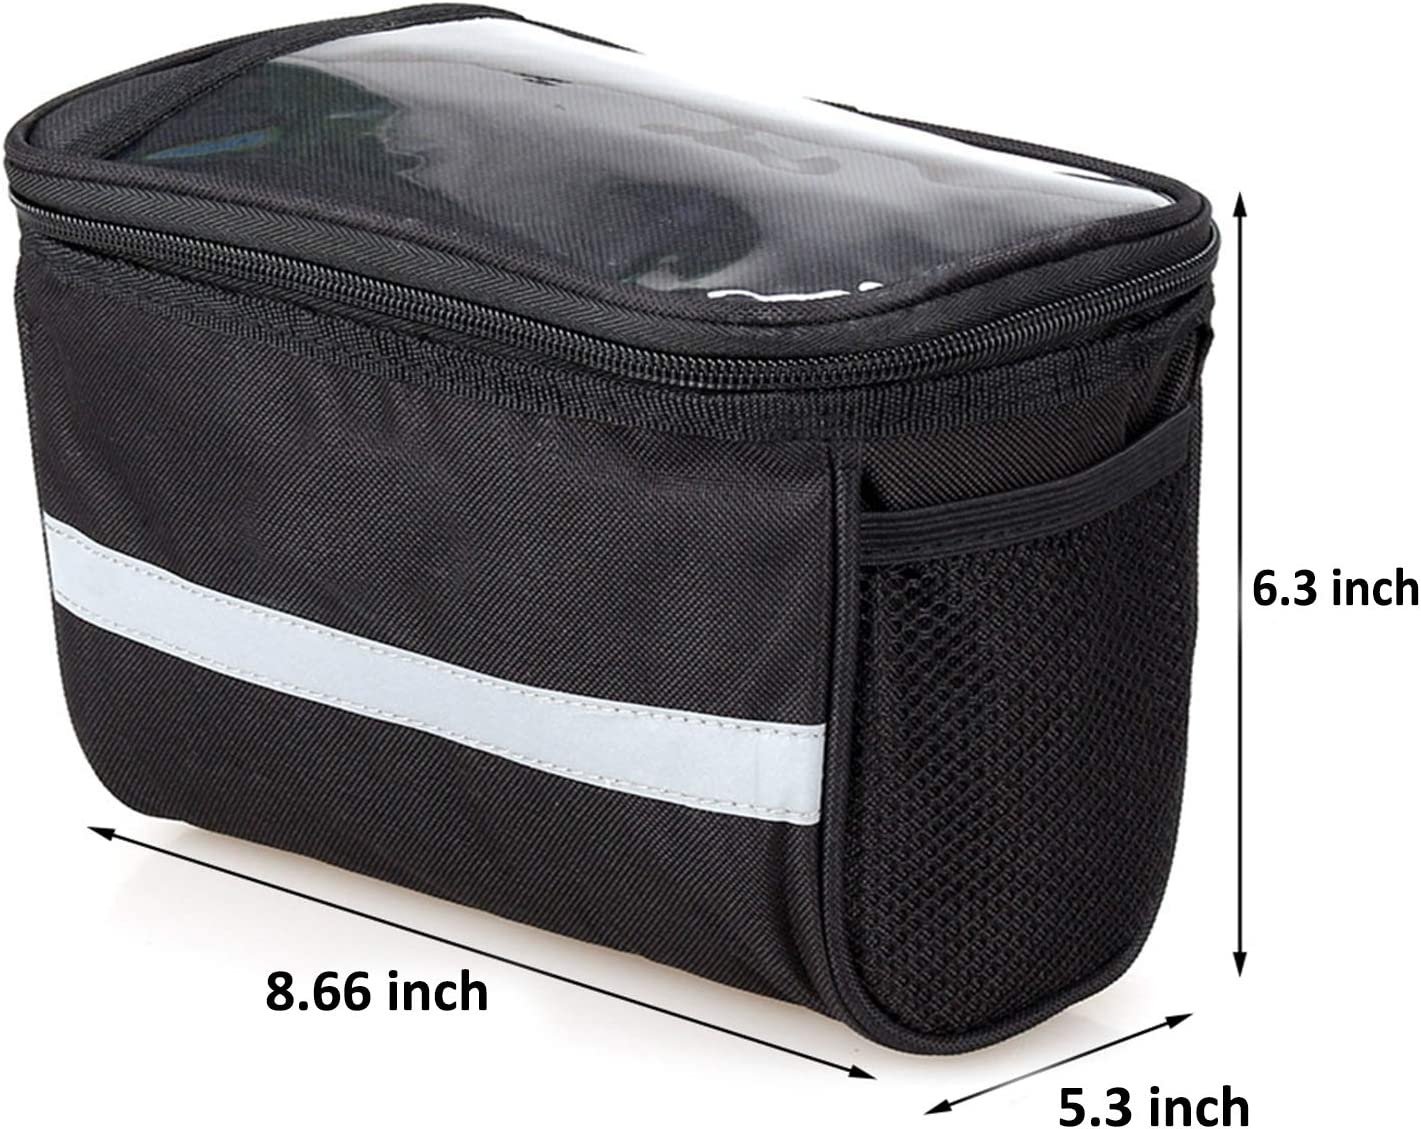 Bike Handlebar Bag Basket Front Bag Large Cpacity Black Cycling Accessories with Touchscreen Window and Detachable Shoulder Strap Water Resistant Bicycle Storage Bag